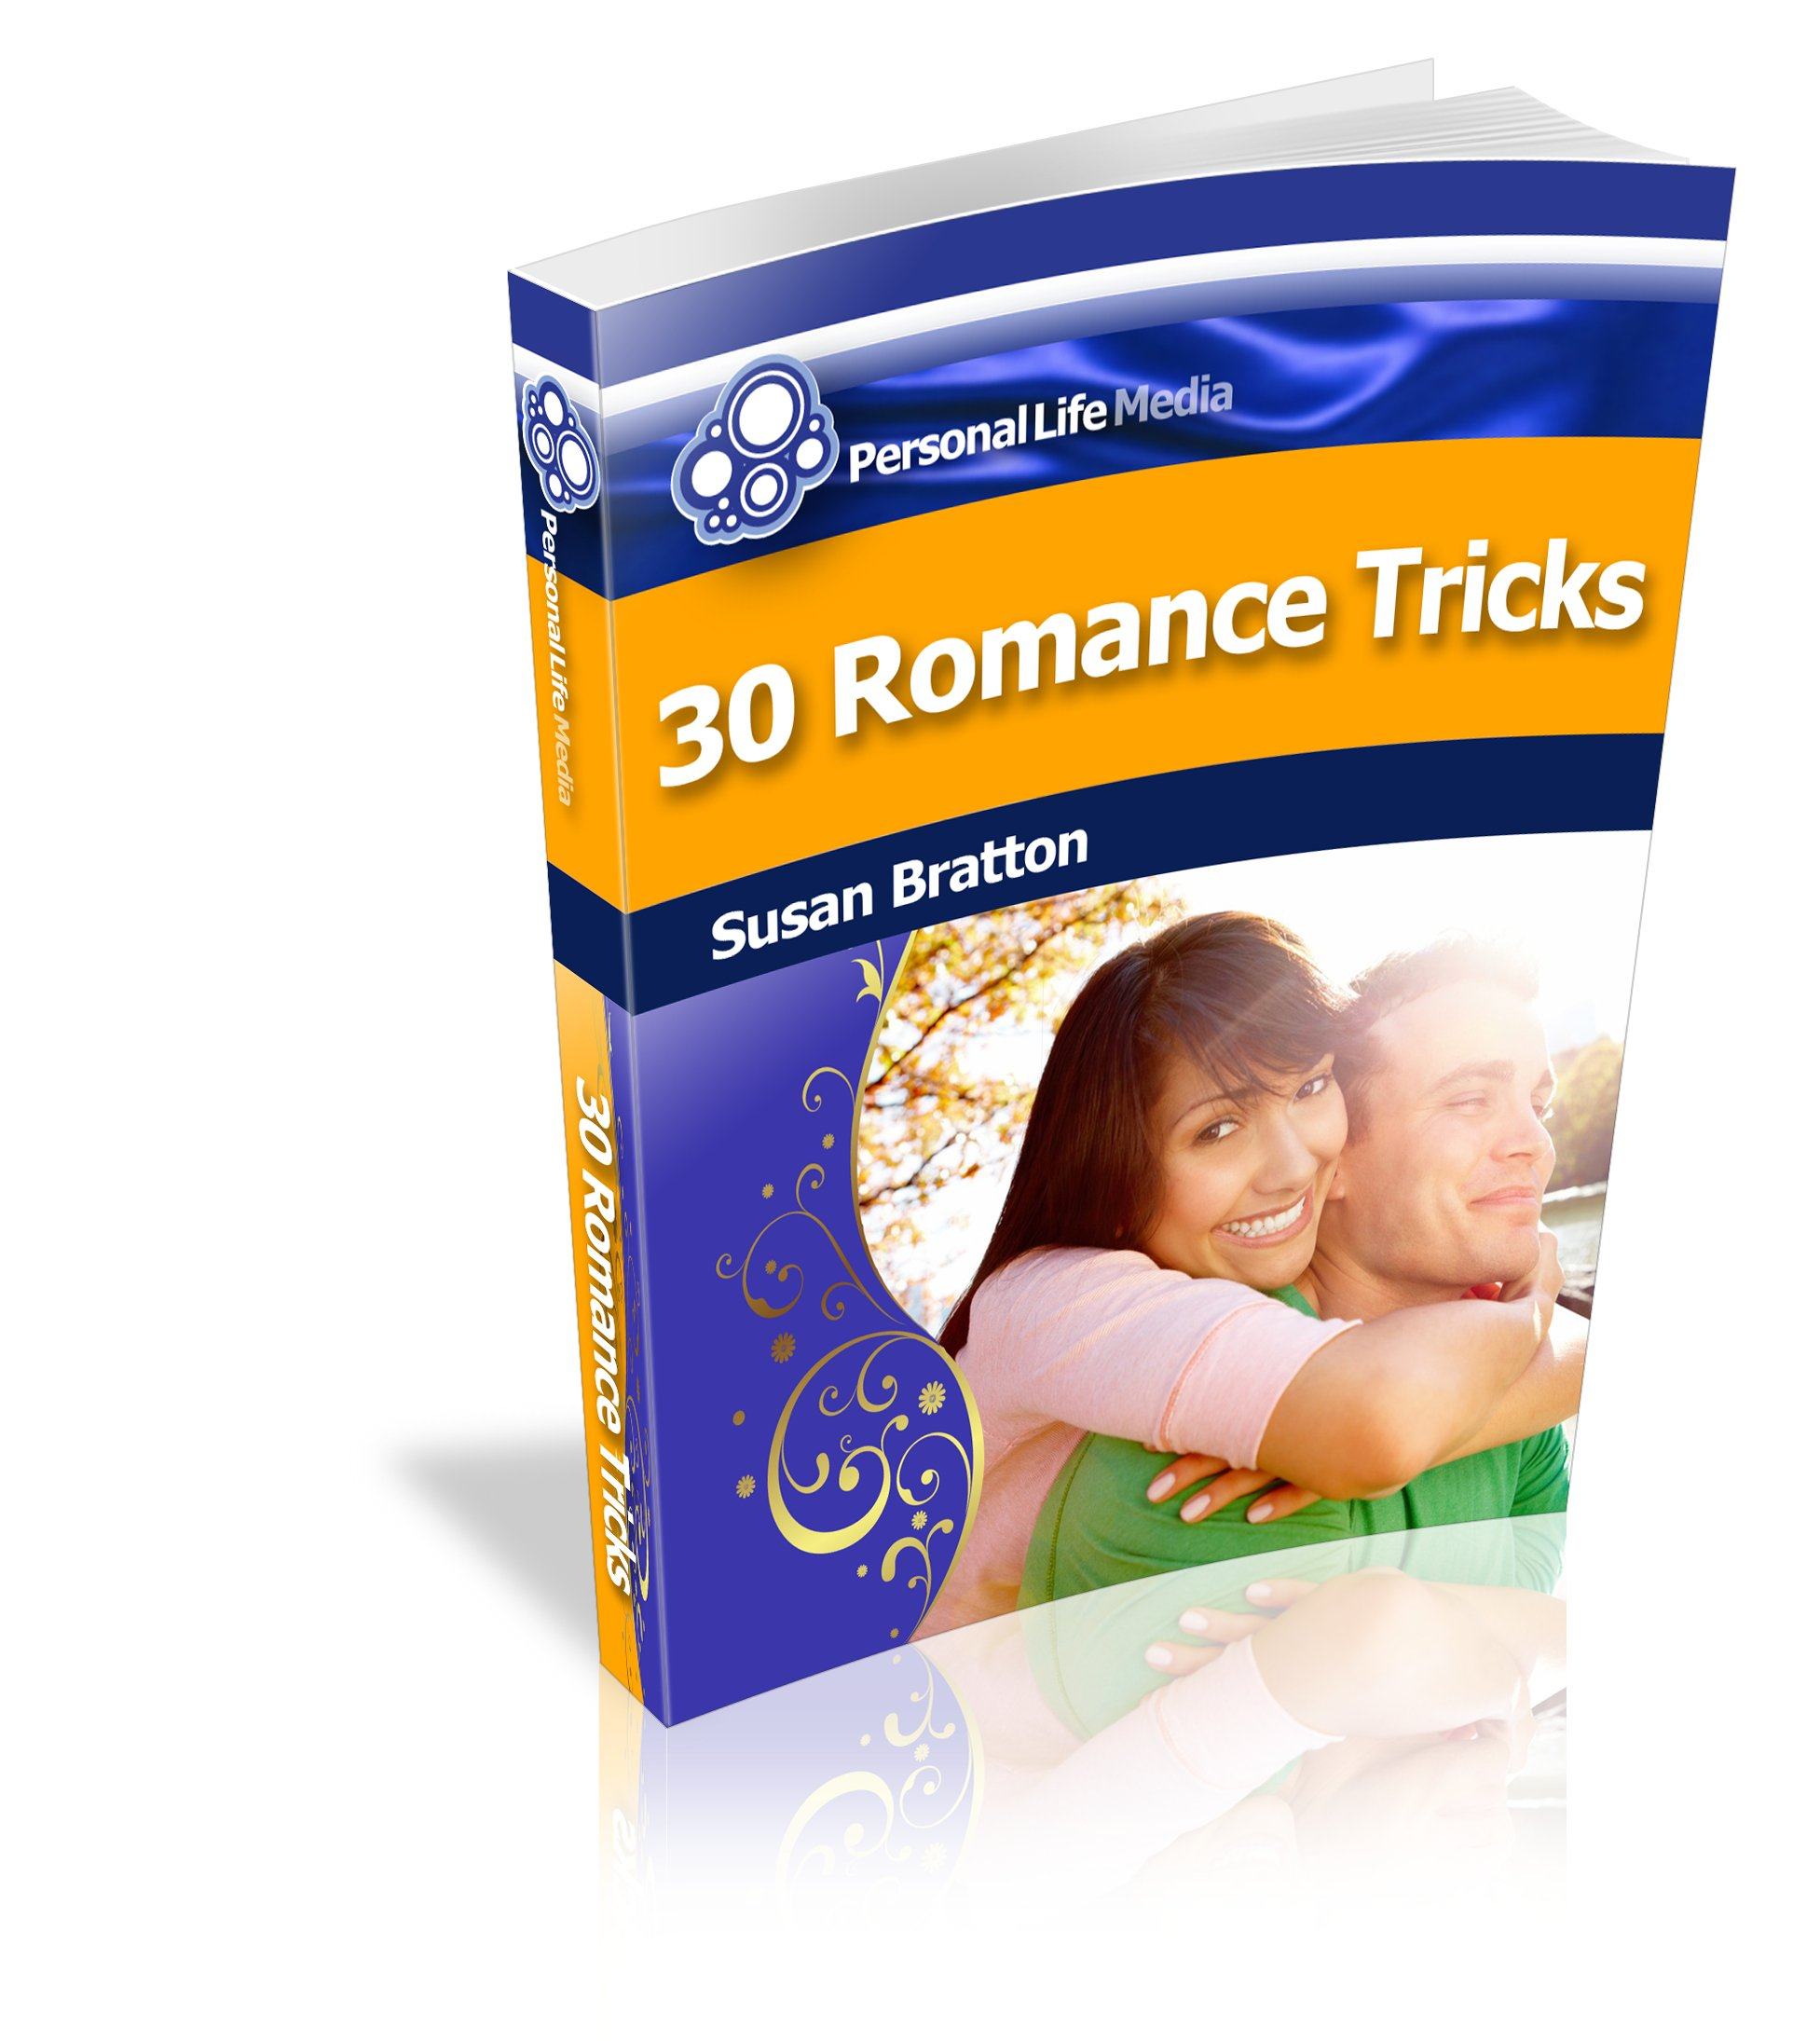 https://members.personallifemedia.com/wp-content/uploads/2012/11/30_Romance_Tricks_BOOK_1.jpg